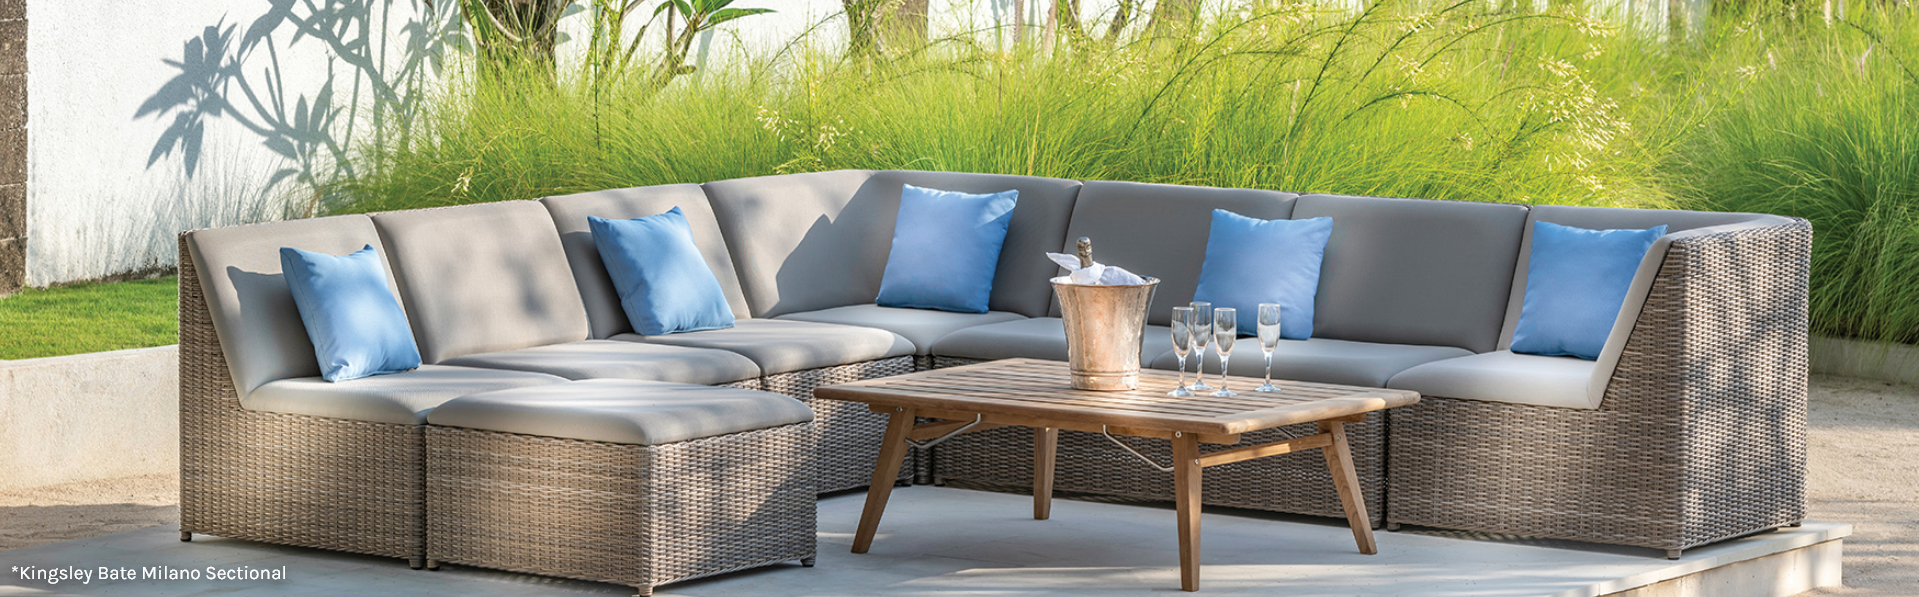 Kingsley Bate Outdoor Furniture Patio Furniture Authenteak - Outdoor Furniture Clearance Townsville